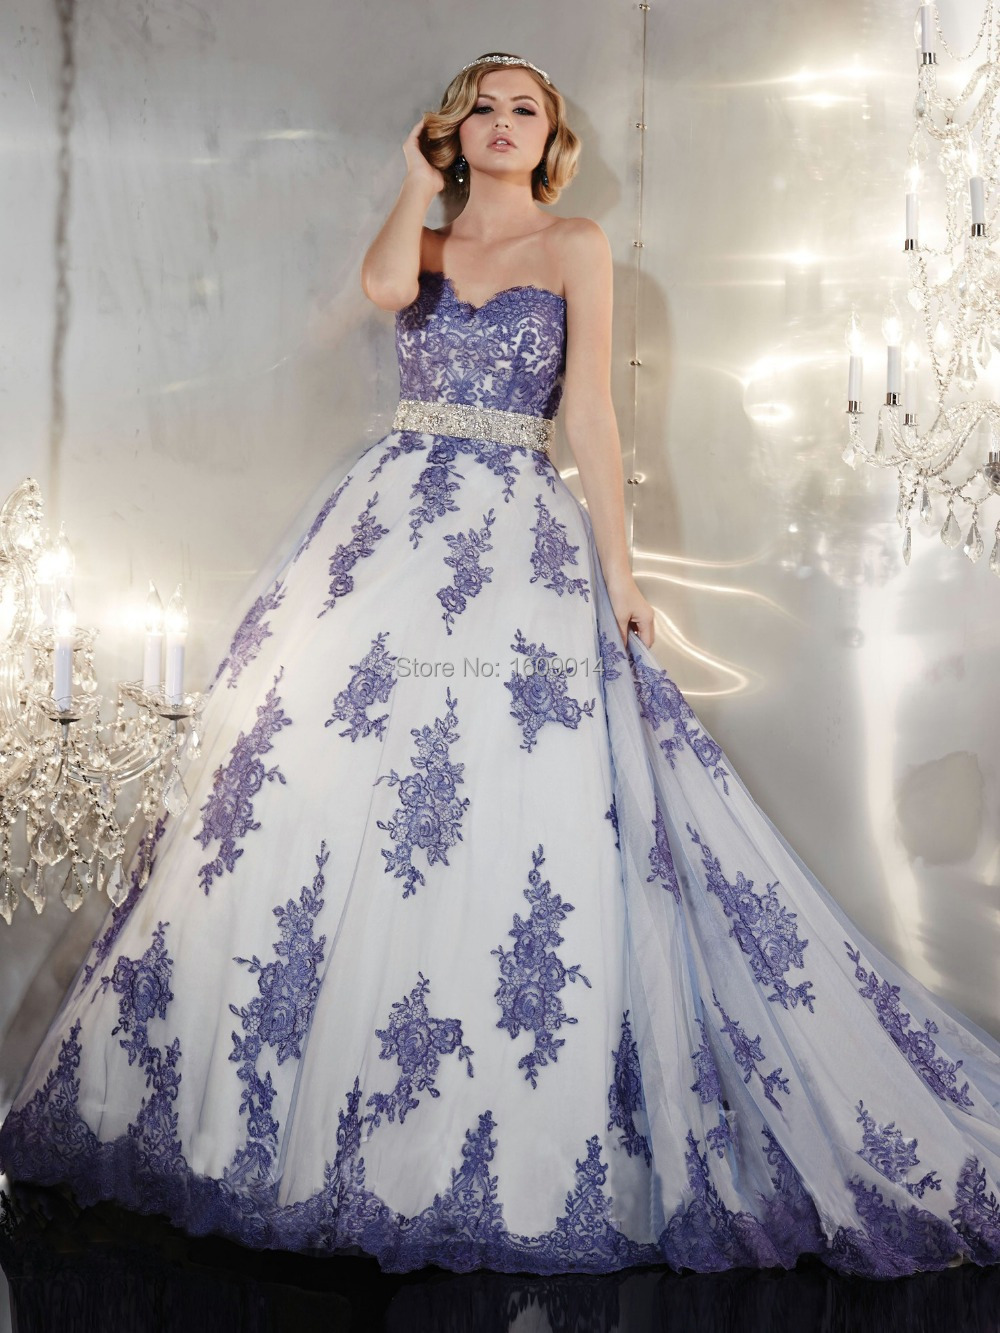 Free shipping WD 2415 Made to order two tone wedding dress with ...